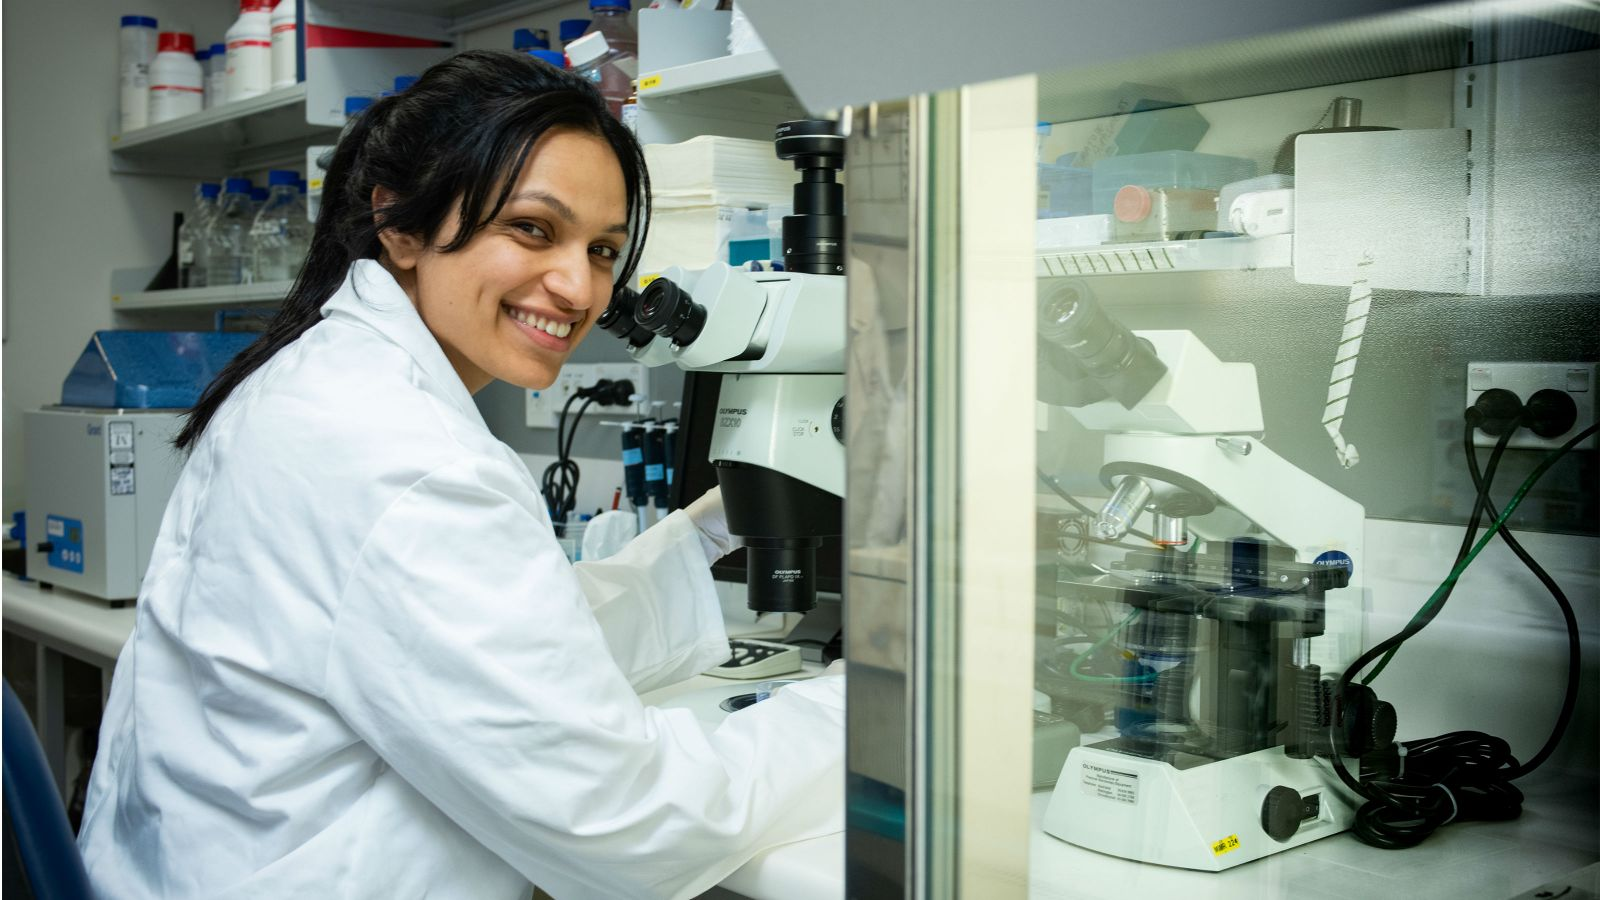 Palak, wearing a lab coat, sits by a microscope.